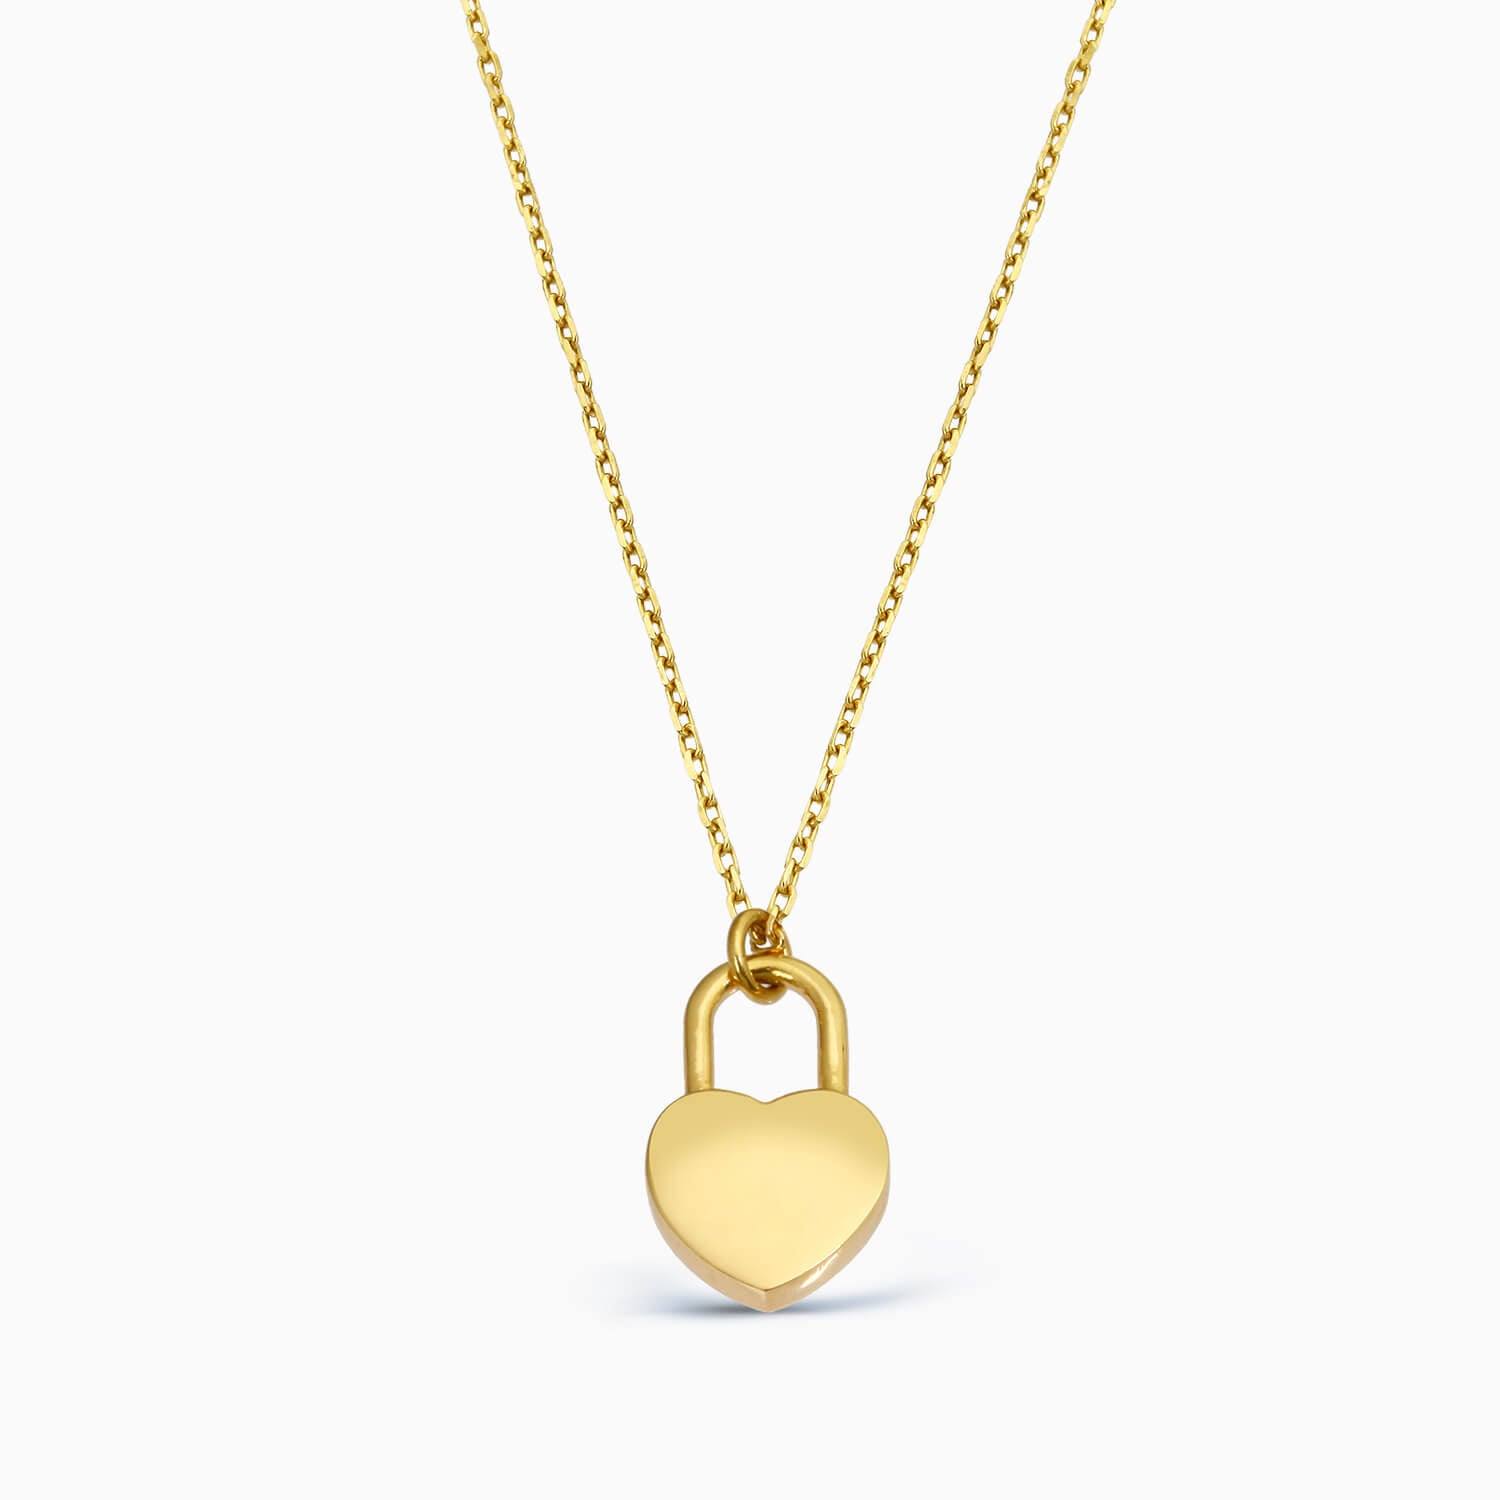 gold plated heart lock necklace